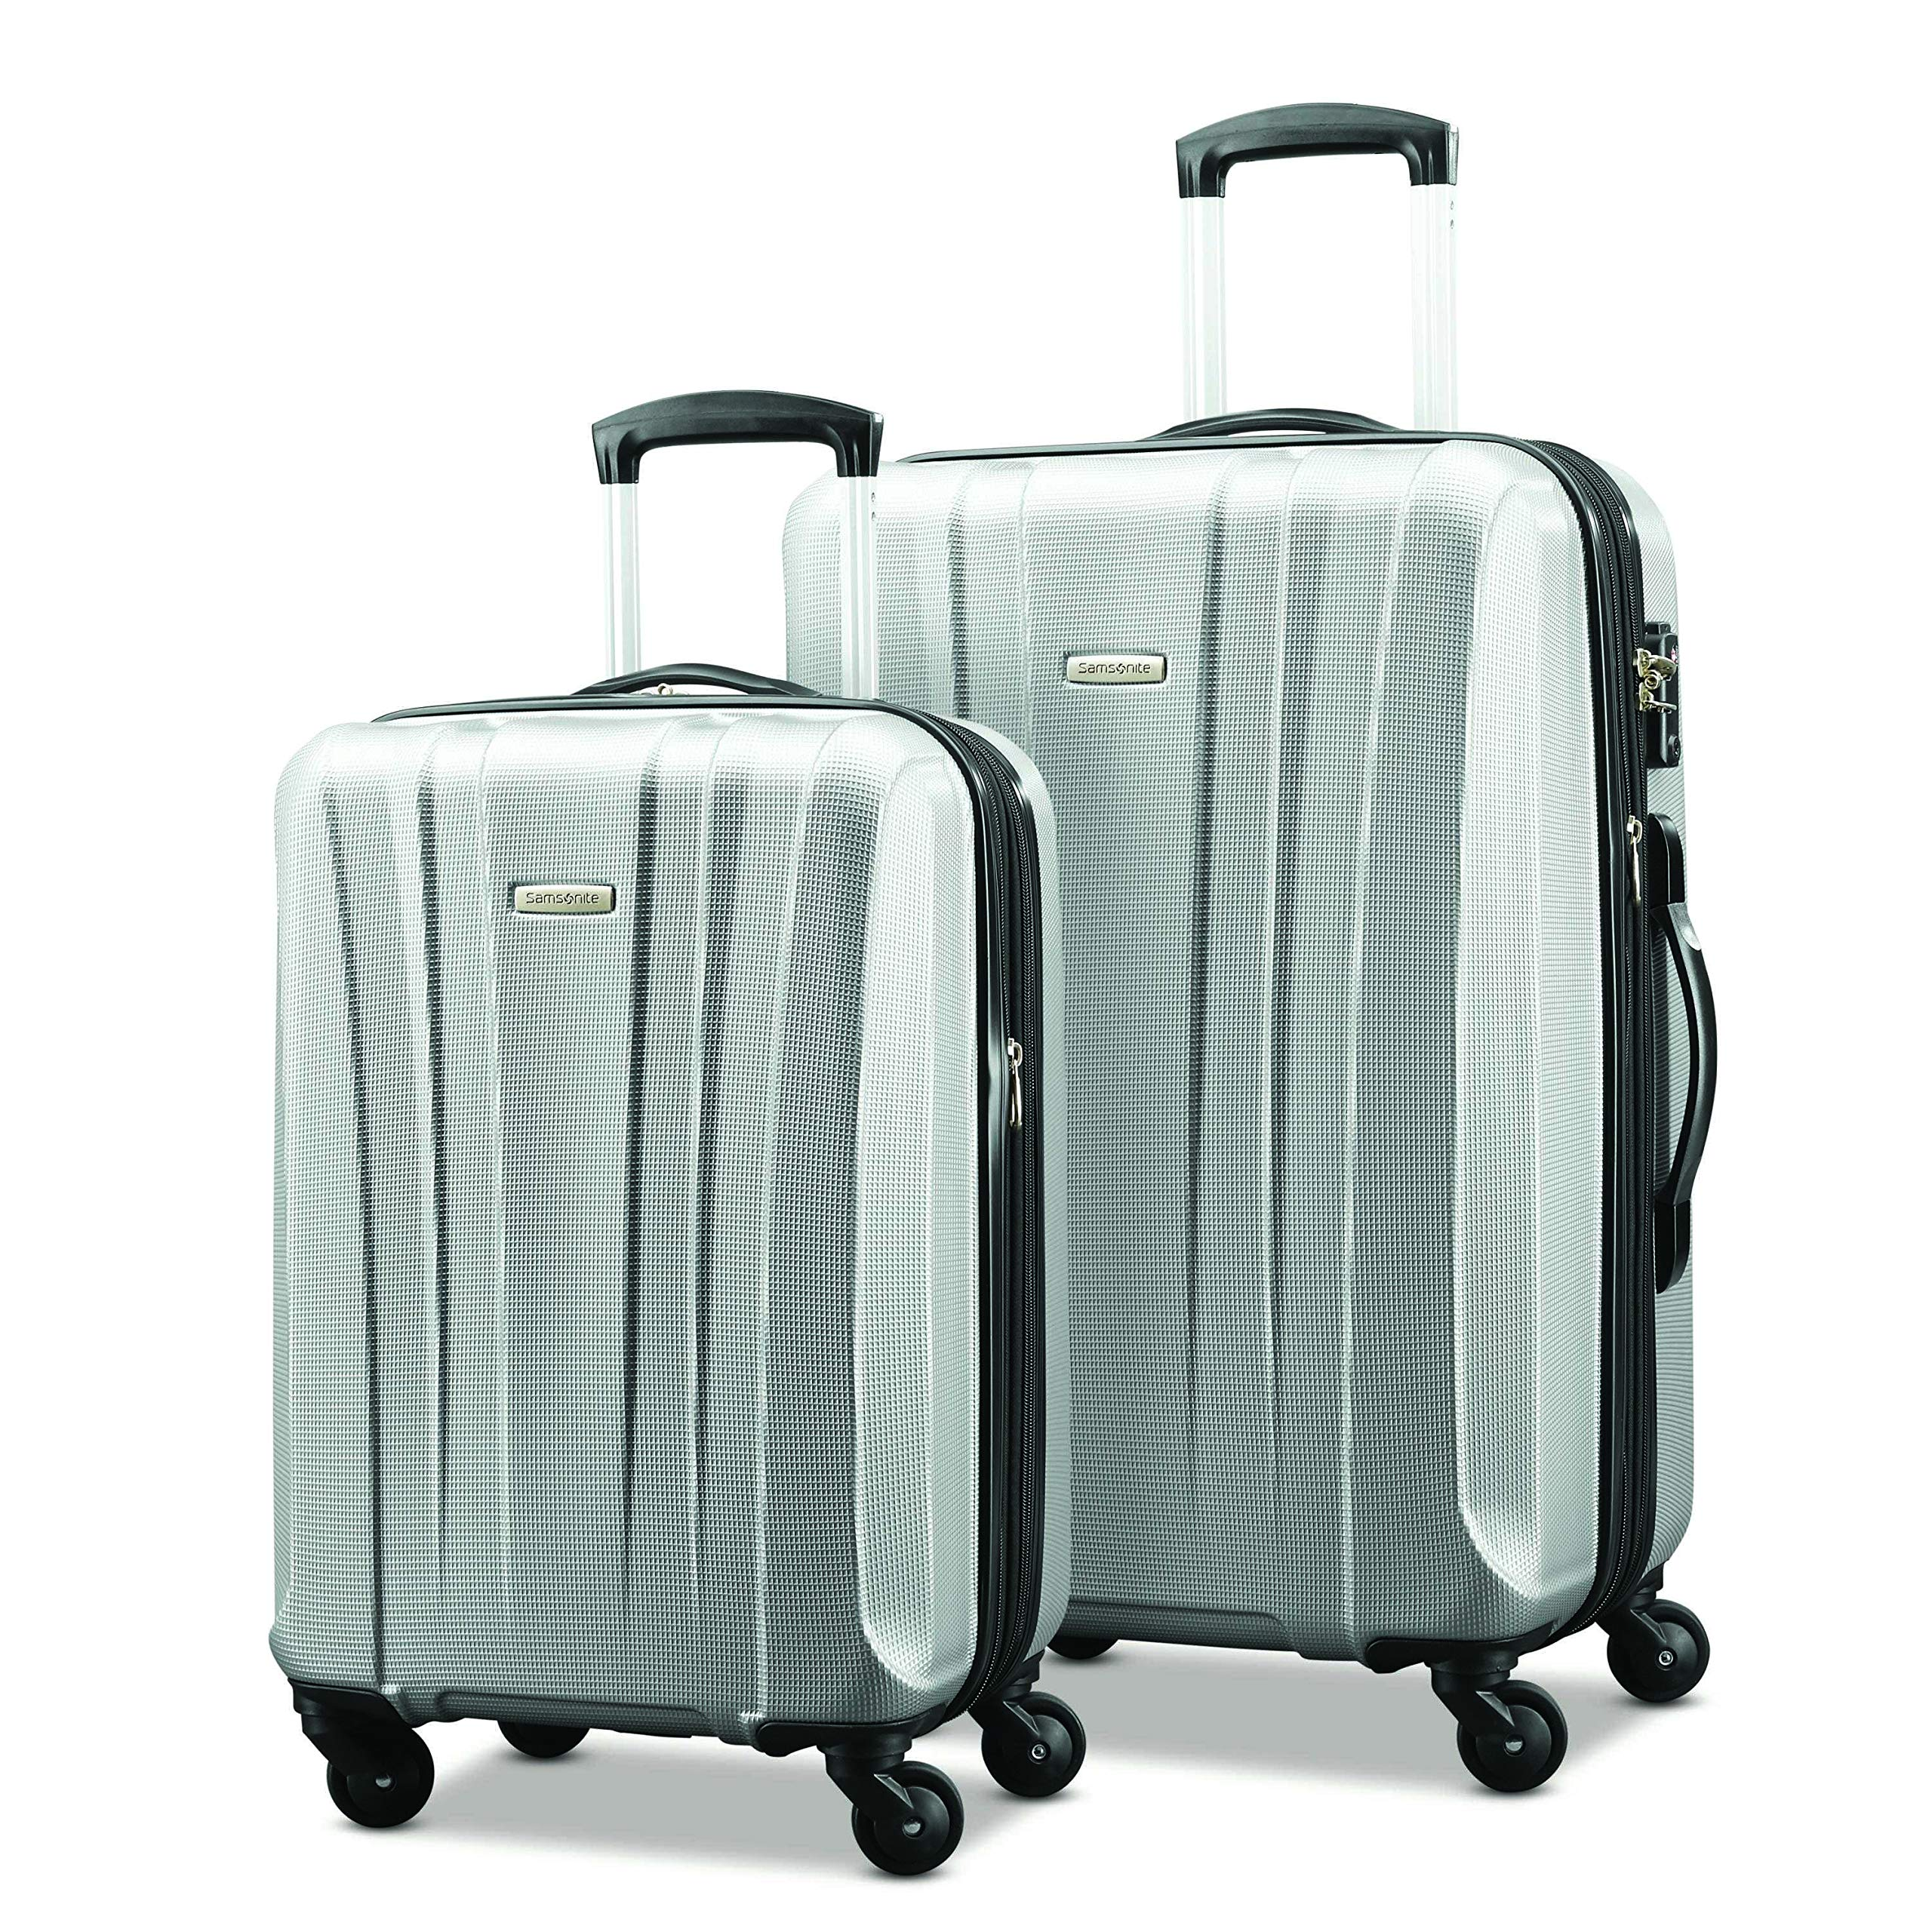 Samsonite Pulse Dlx Lightweight 2 Piece Hardside Set (20''/28''), Silver, Exclusive to Amazon